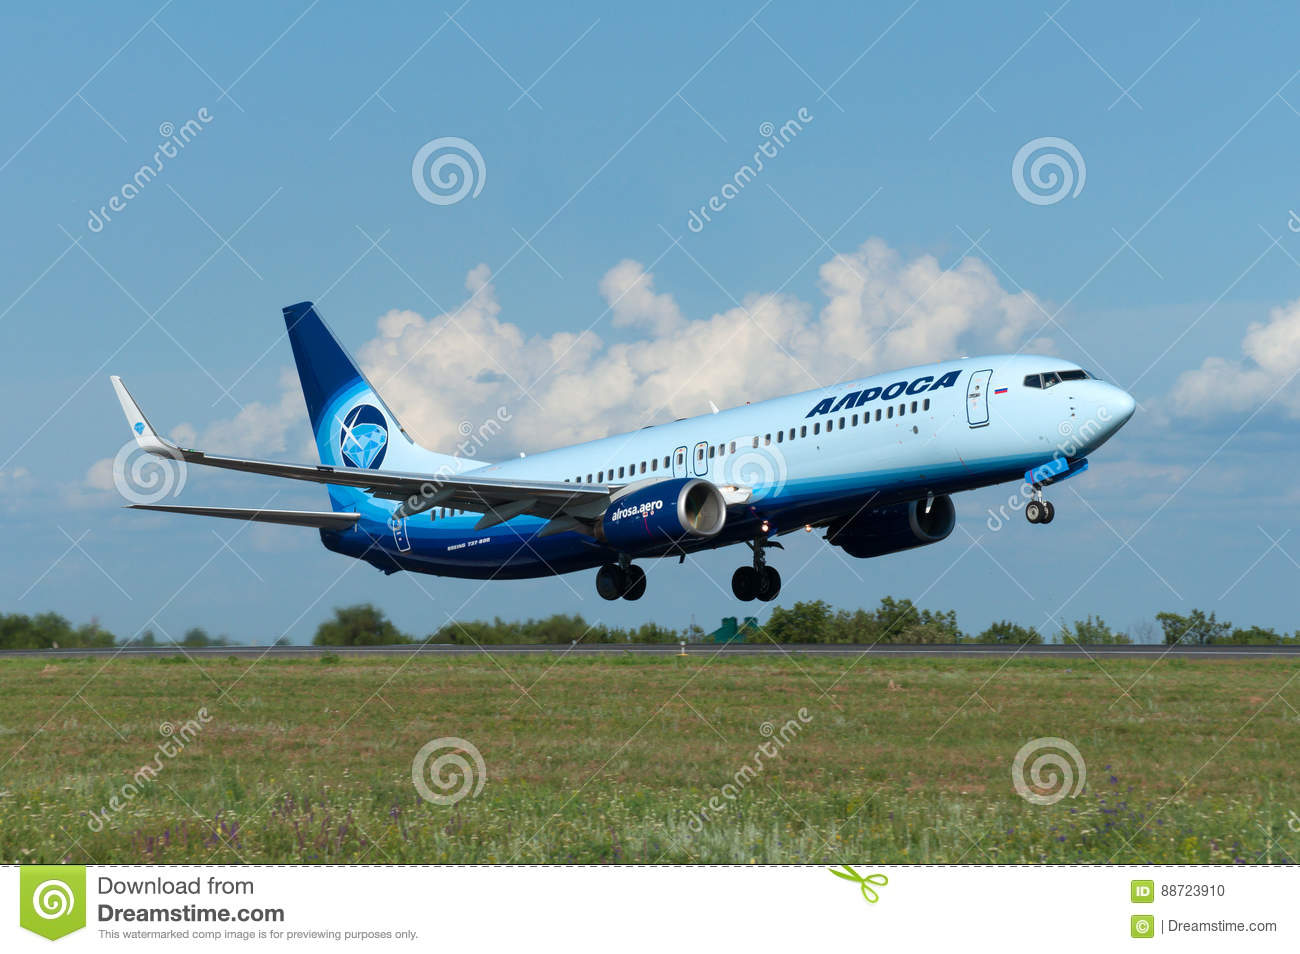 Takeoff Of The Aircraft Boeing-737, Rostov-on-Don, Russia